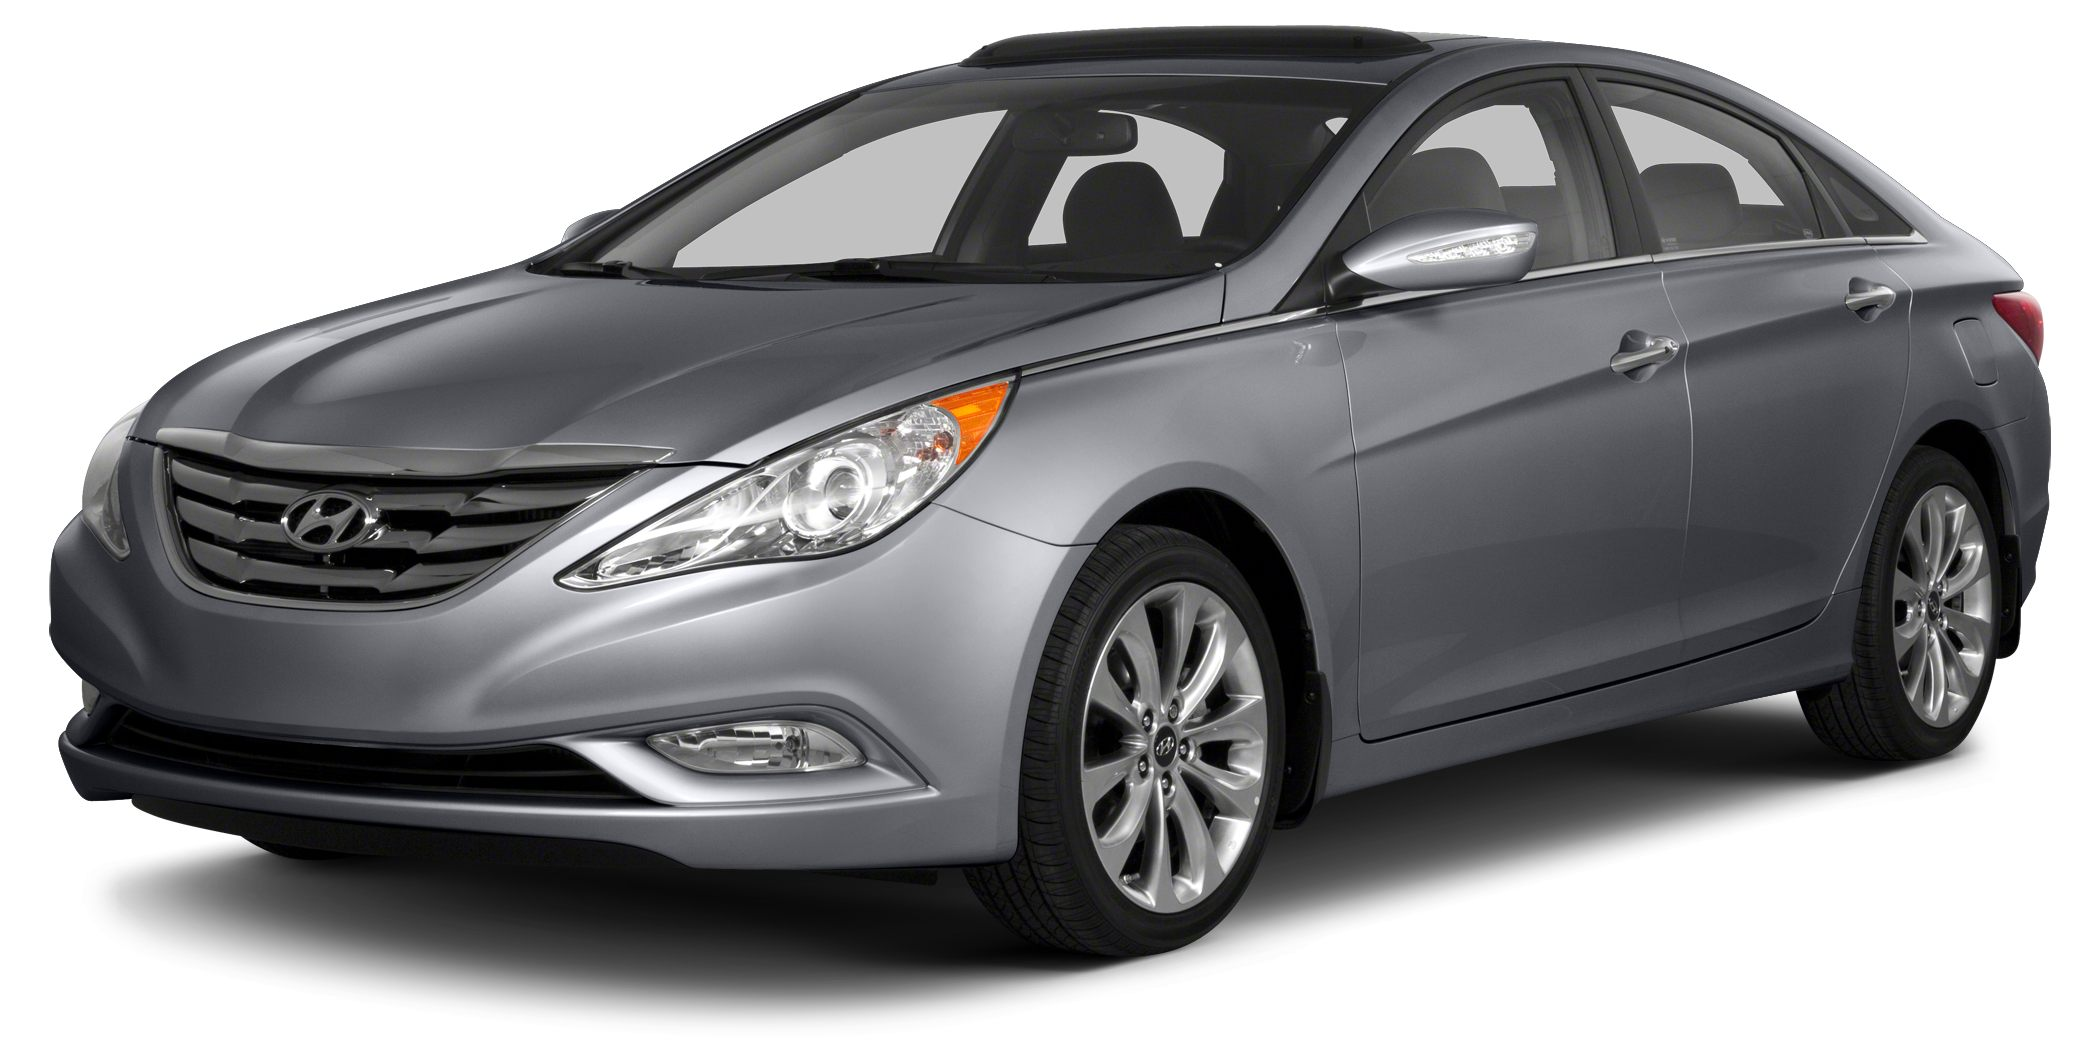 2013 Hyundai Sonata SE Color Harbor Gray Metallic Stock H52942A VIN 5NPEC4AC1DH622628